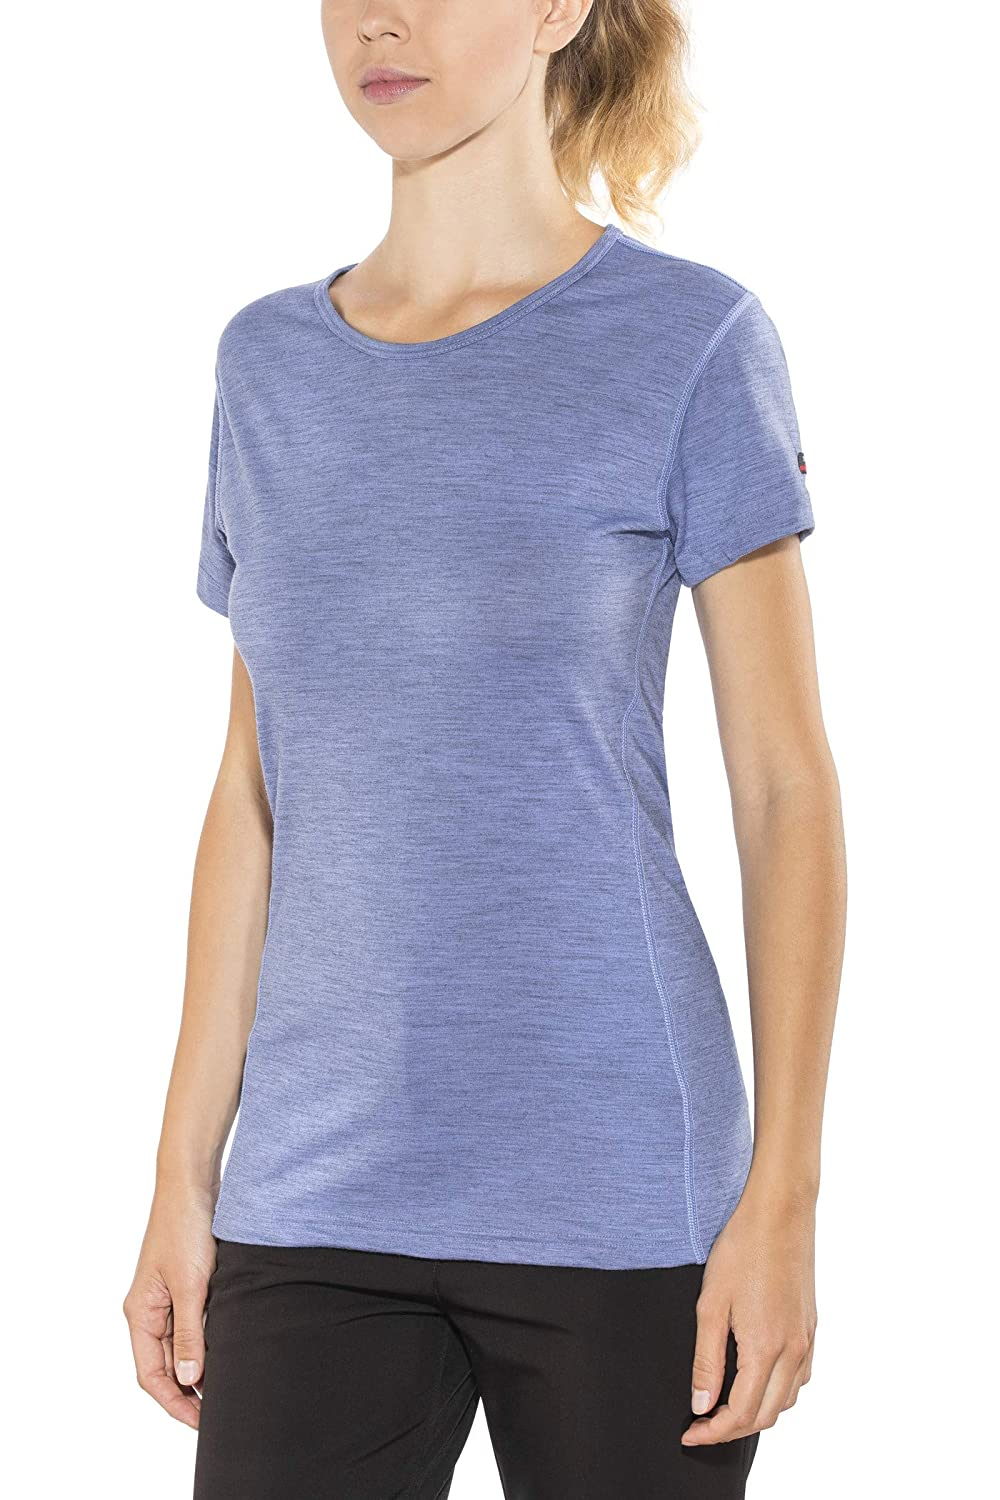 Devold 150 Ultralight Breeze T-Shirt Women Shirt - Damenshirt aus Merinowolle